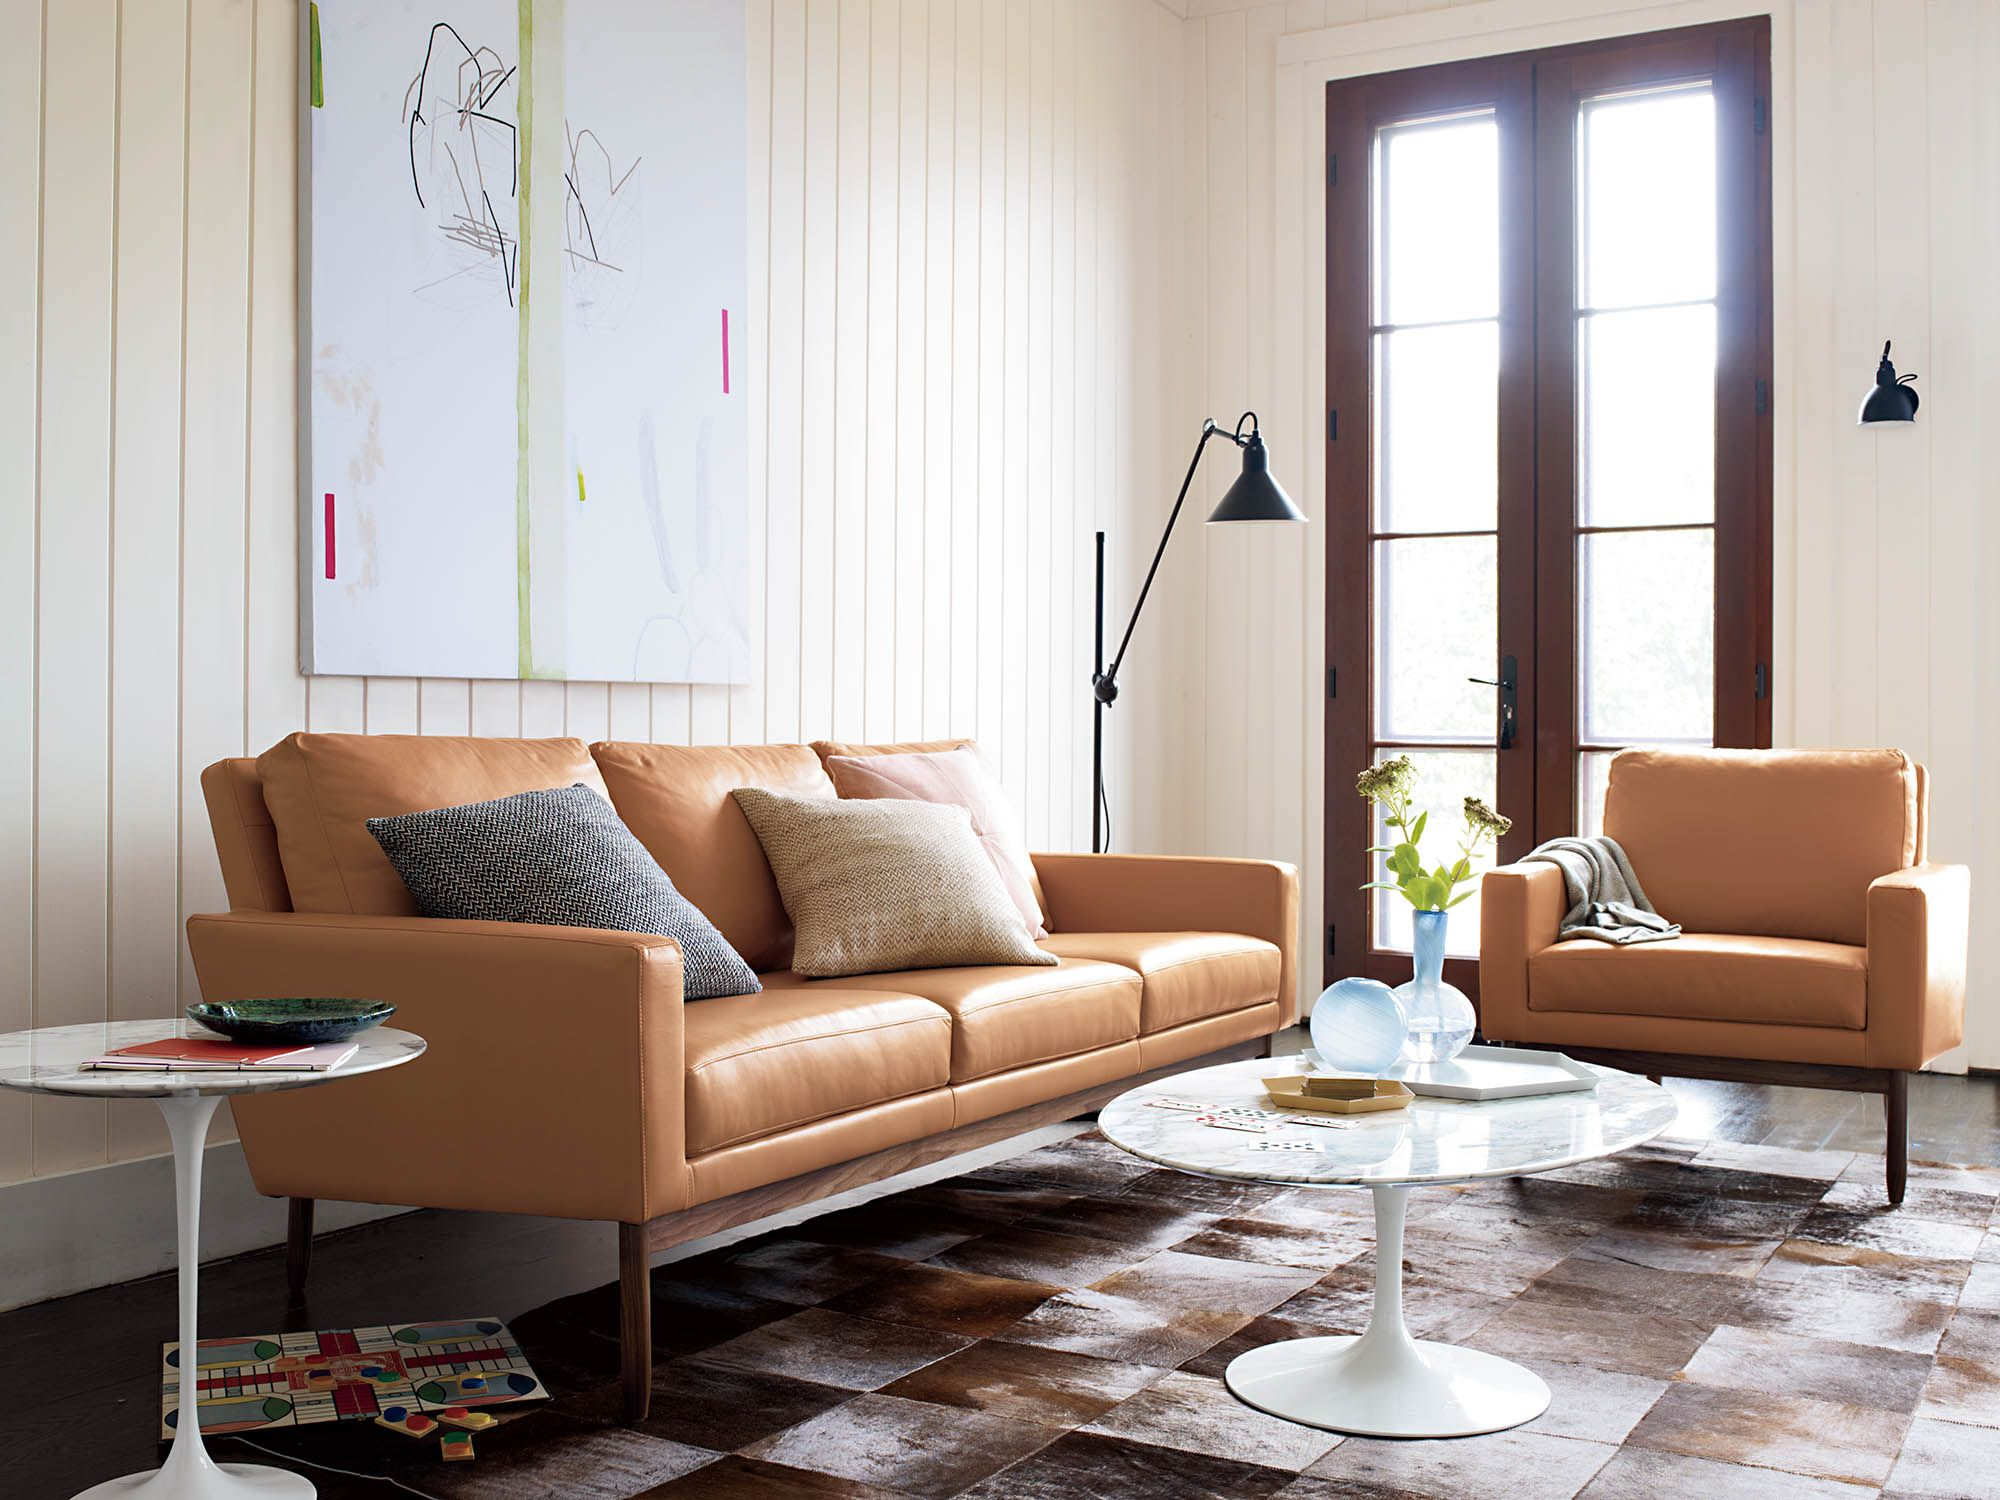 Exceptionnel Raleigh Sofa Collection, Designed By Jeffrey Bernett And Nicholas Dodziuk